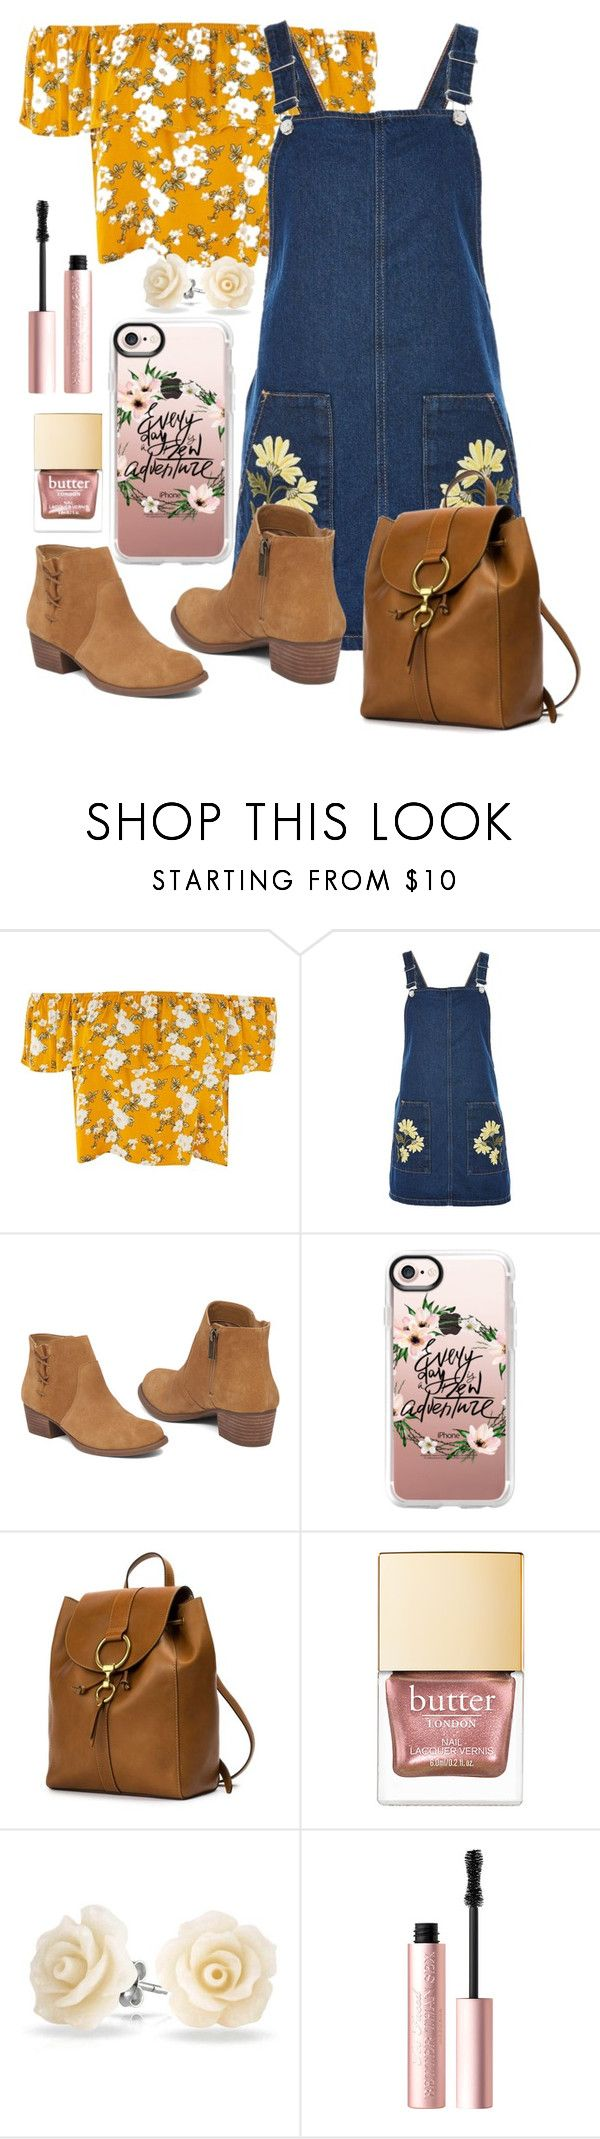 """Ellie {Up} Inspired Outfit"" by the-disney-outfits ❤ liked on Polyvore featuring Topshop, Jessica Simpson, Casetify, Frye, Bling Jewelry and Too Faced Cosmetics"